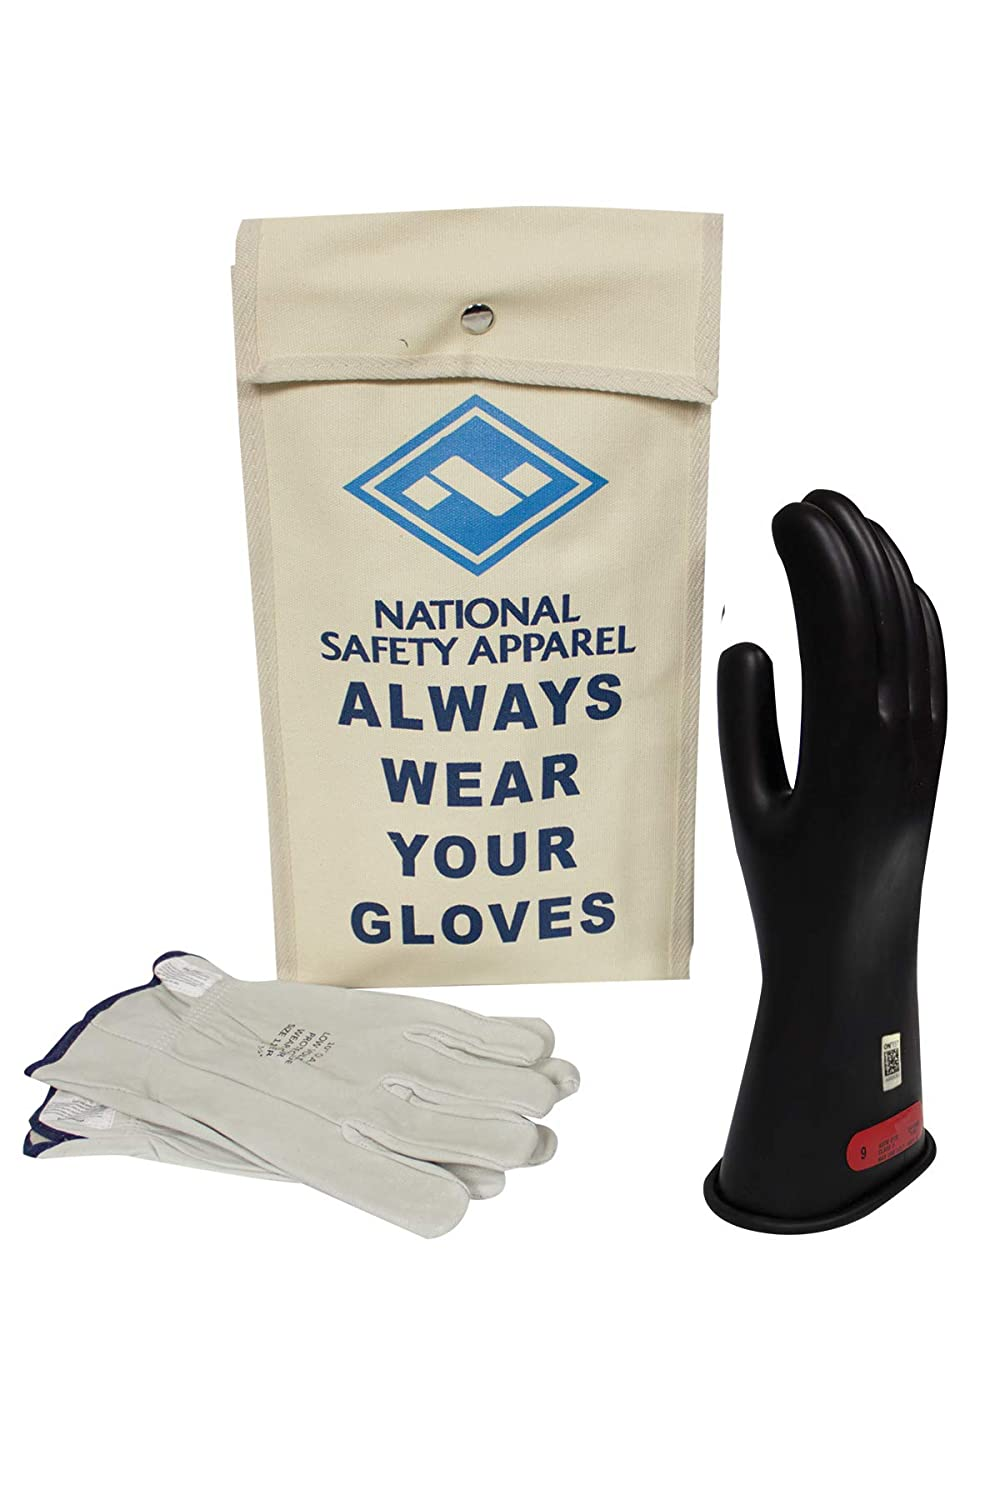 National Safety Apparel Class 0 Black Rubber Voltage Insulating Glove Kit with Leather Protectors, Max. Use Voltage 1,000V AC/ 1,500V DC (KITGC009)